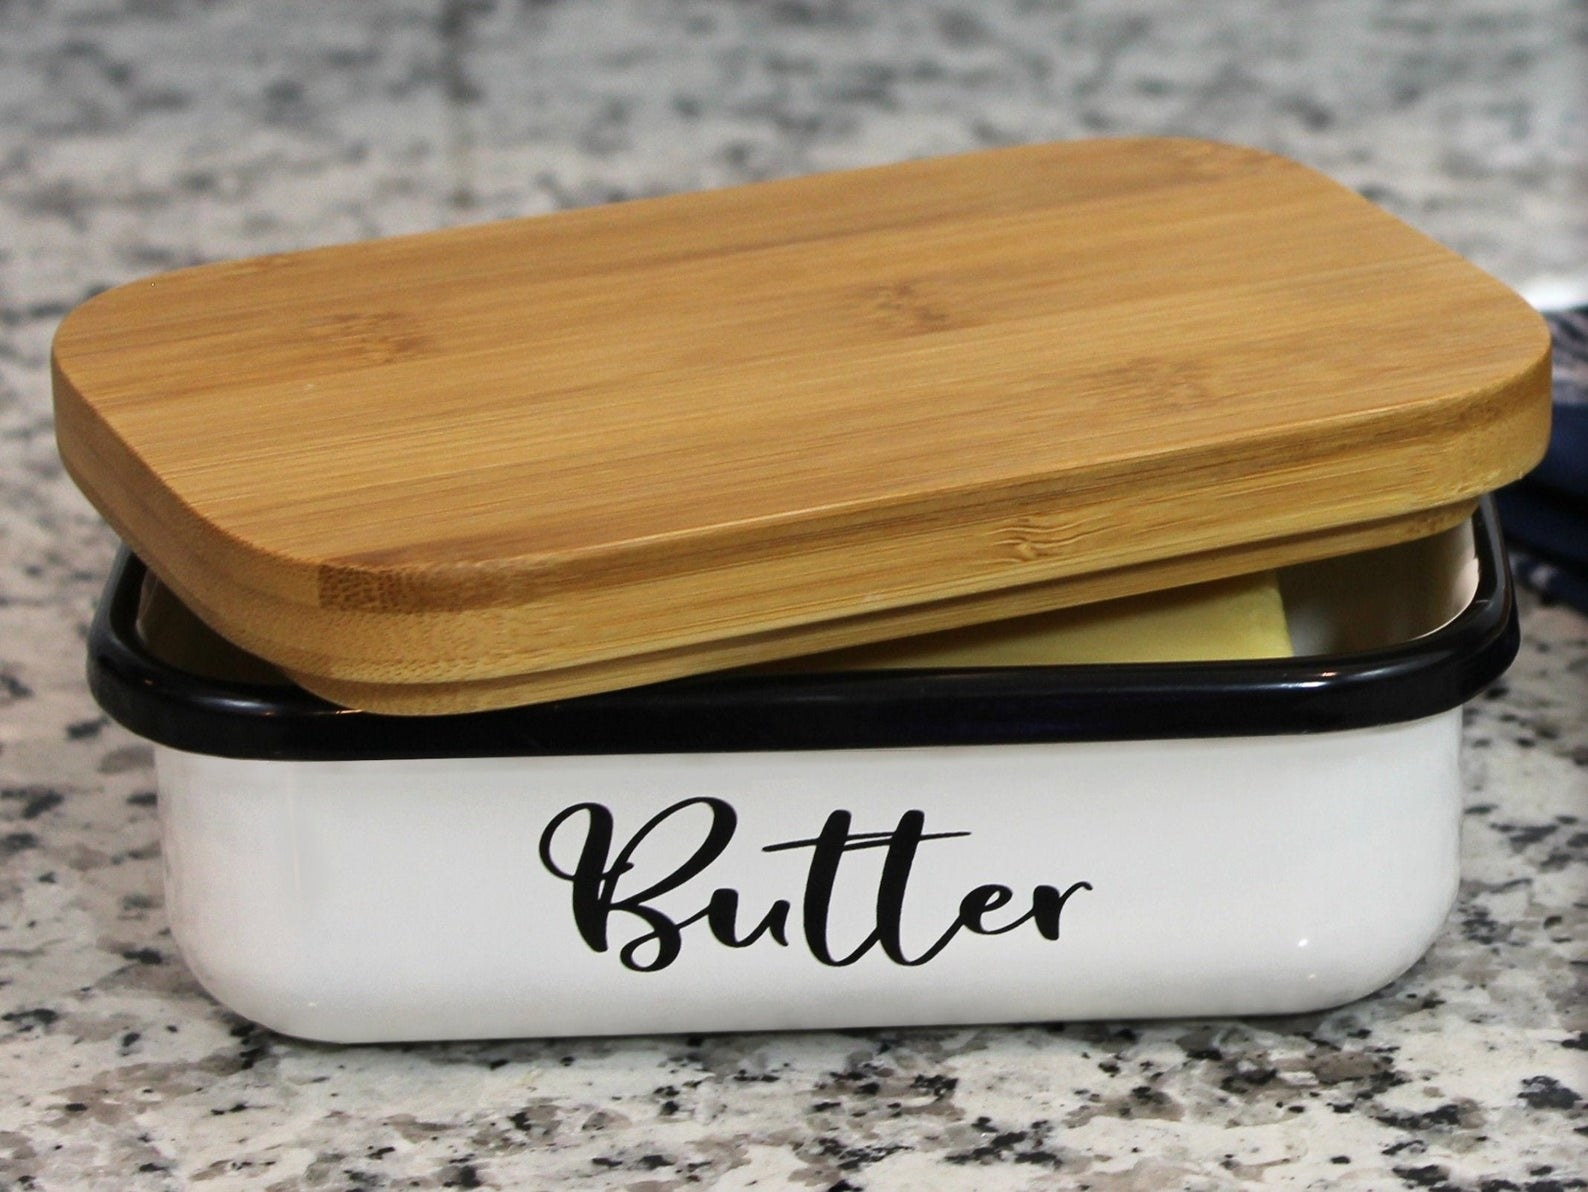 Butter dish open with butter inside